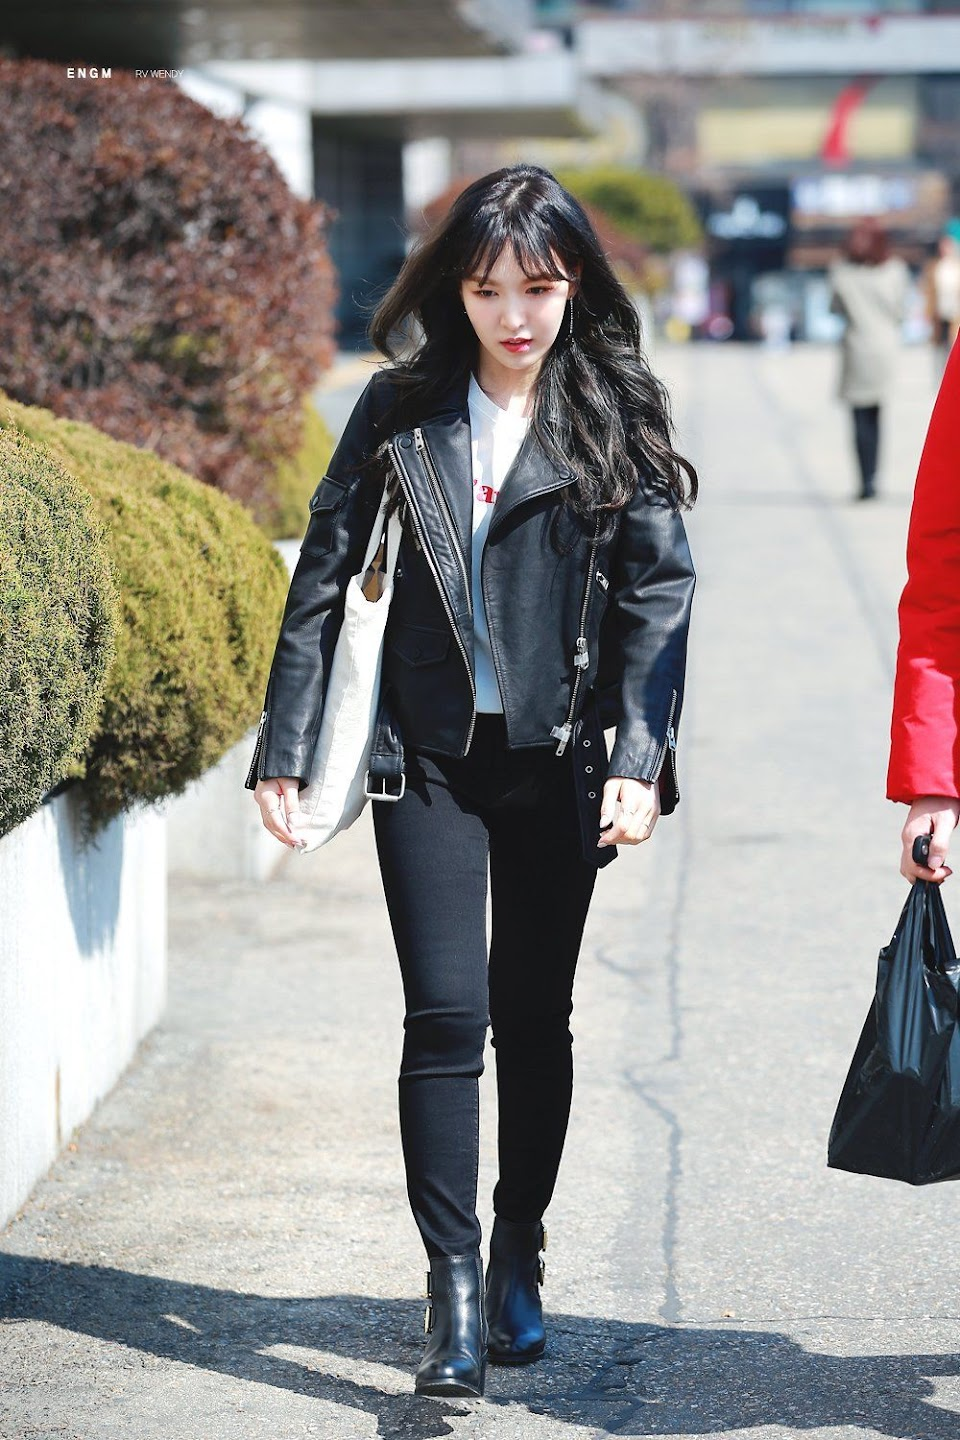 wendy casual 18